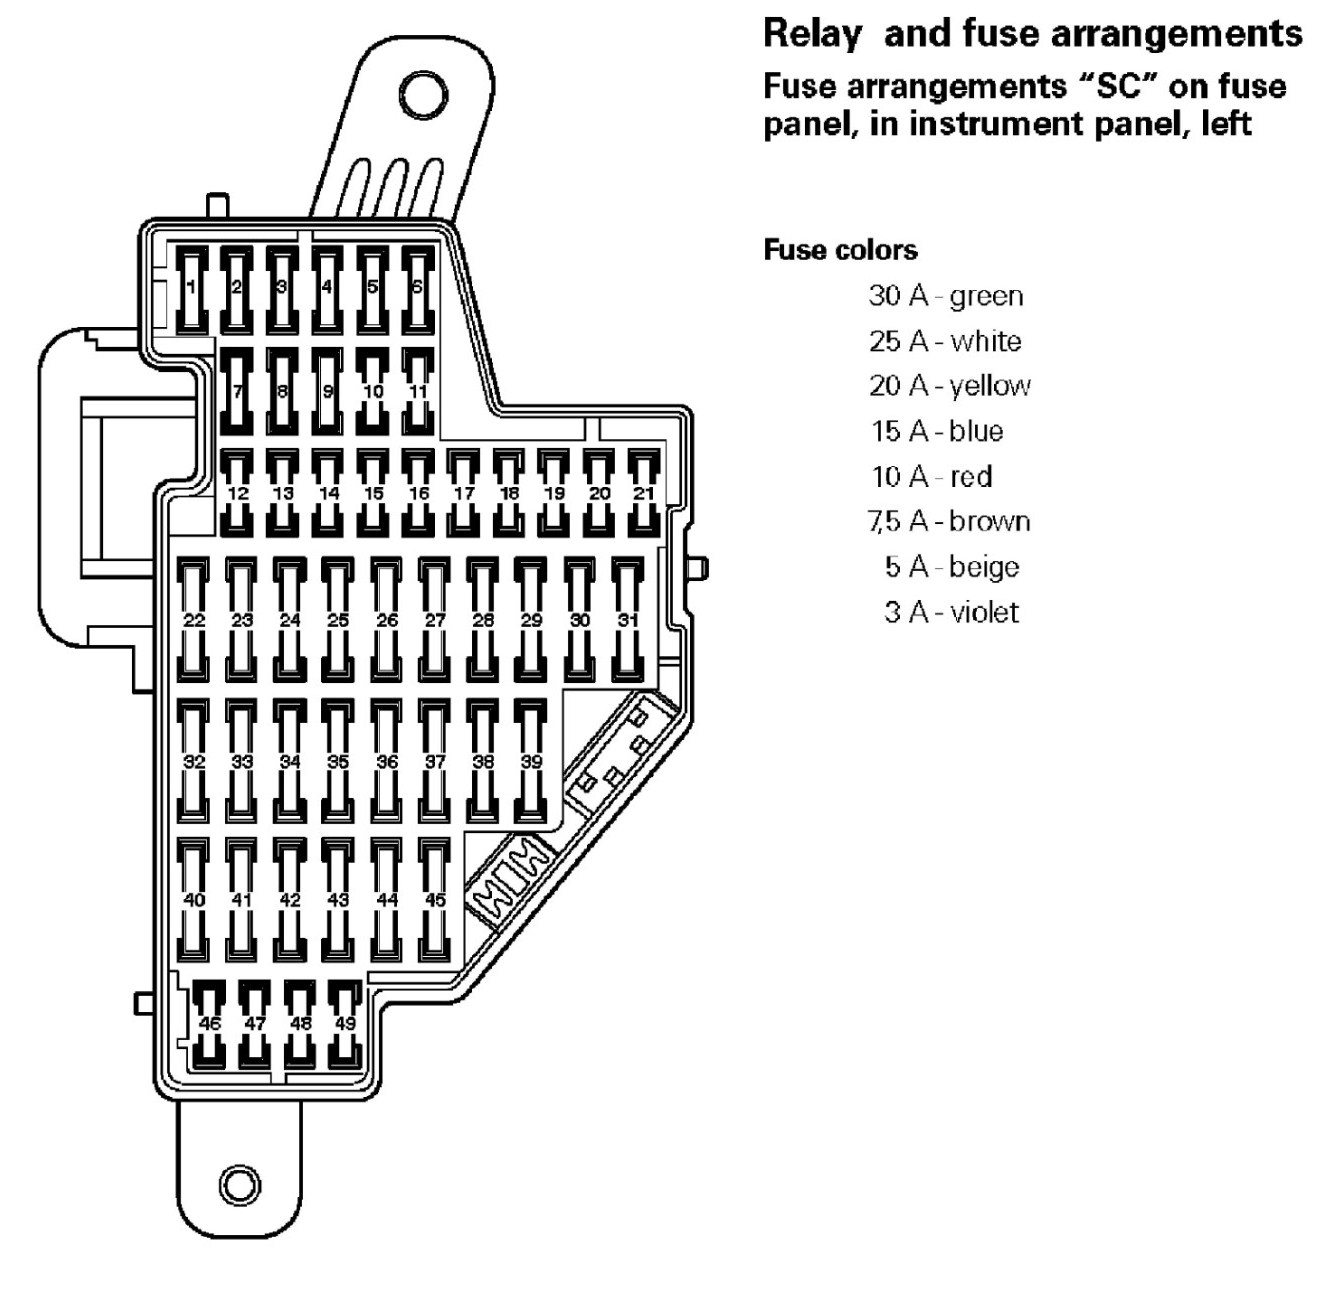 hight resolution of 2009 vw fuse box wiring diagram show 2009 vw passat fuse box layout 2009 vw fuse box